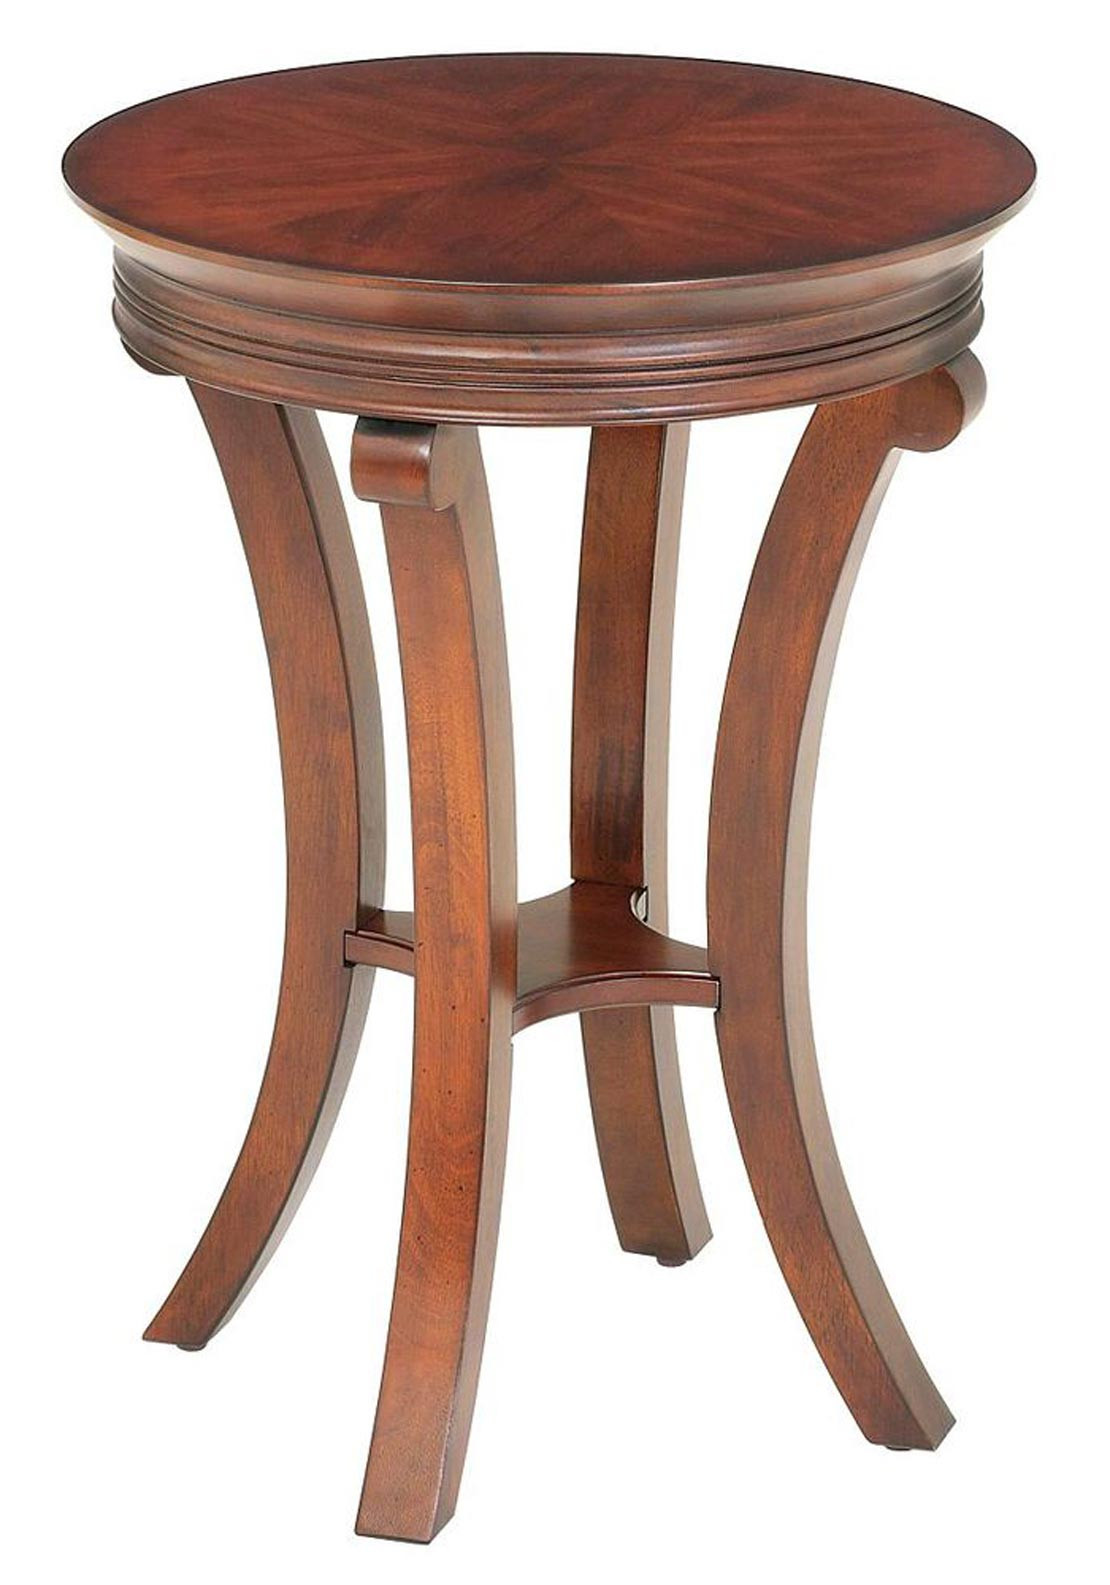 Mindy Brownes Lamp Table, Wood